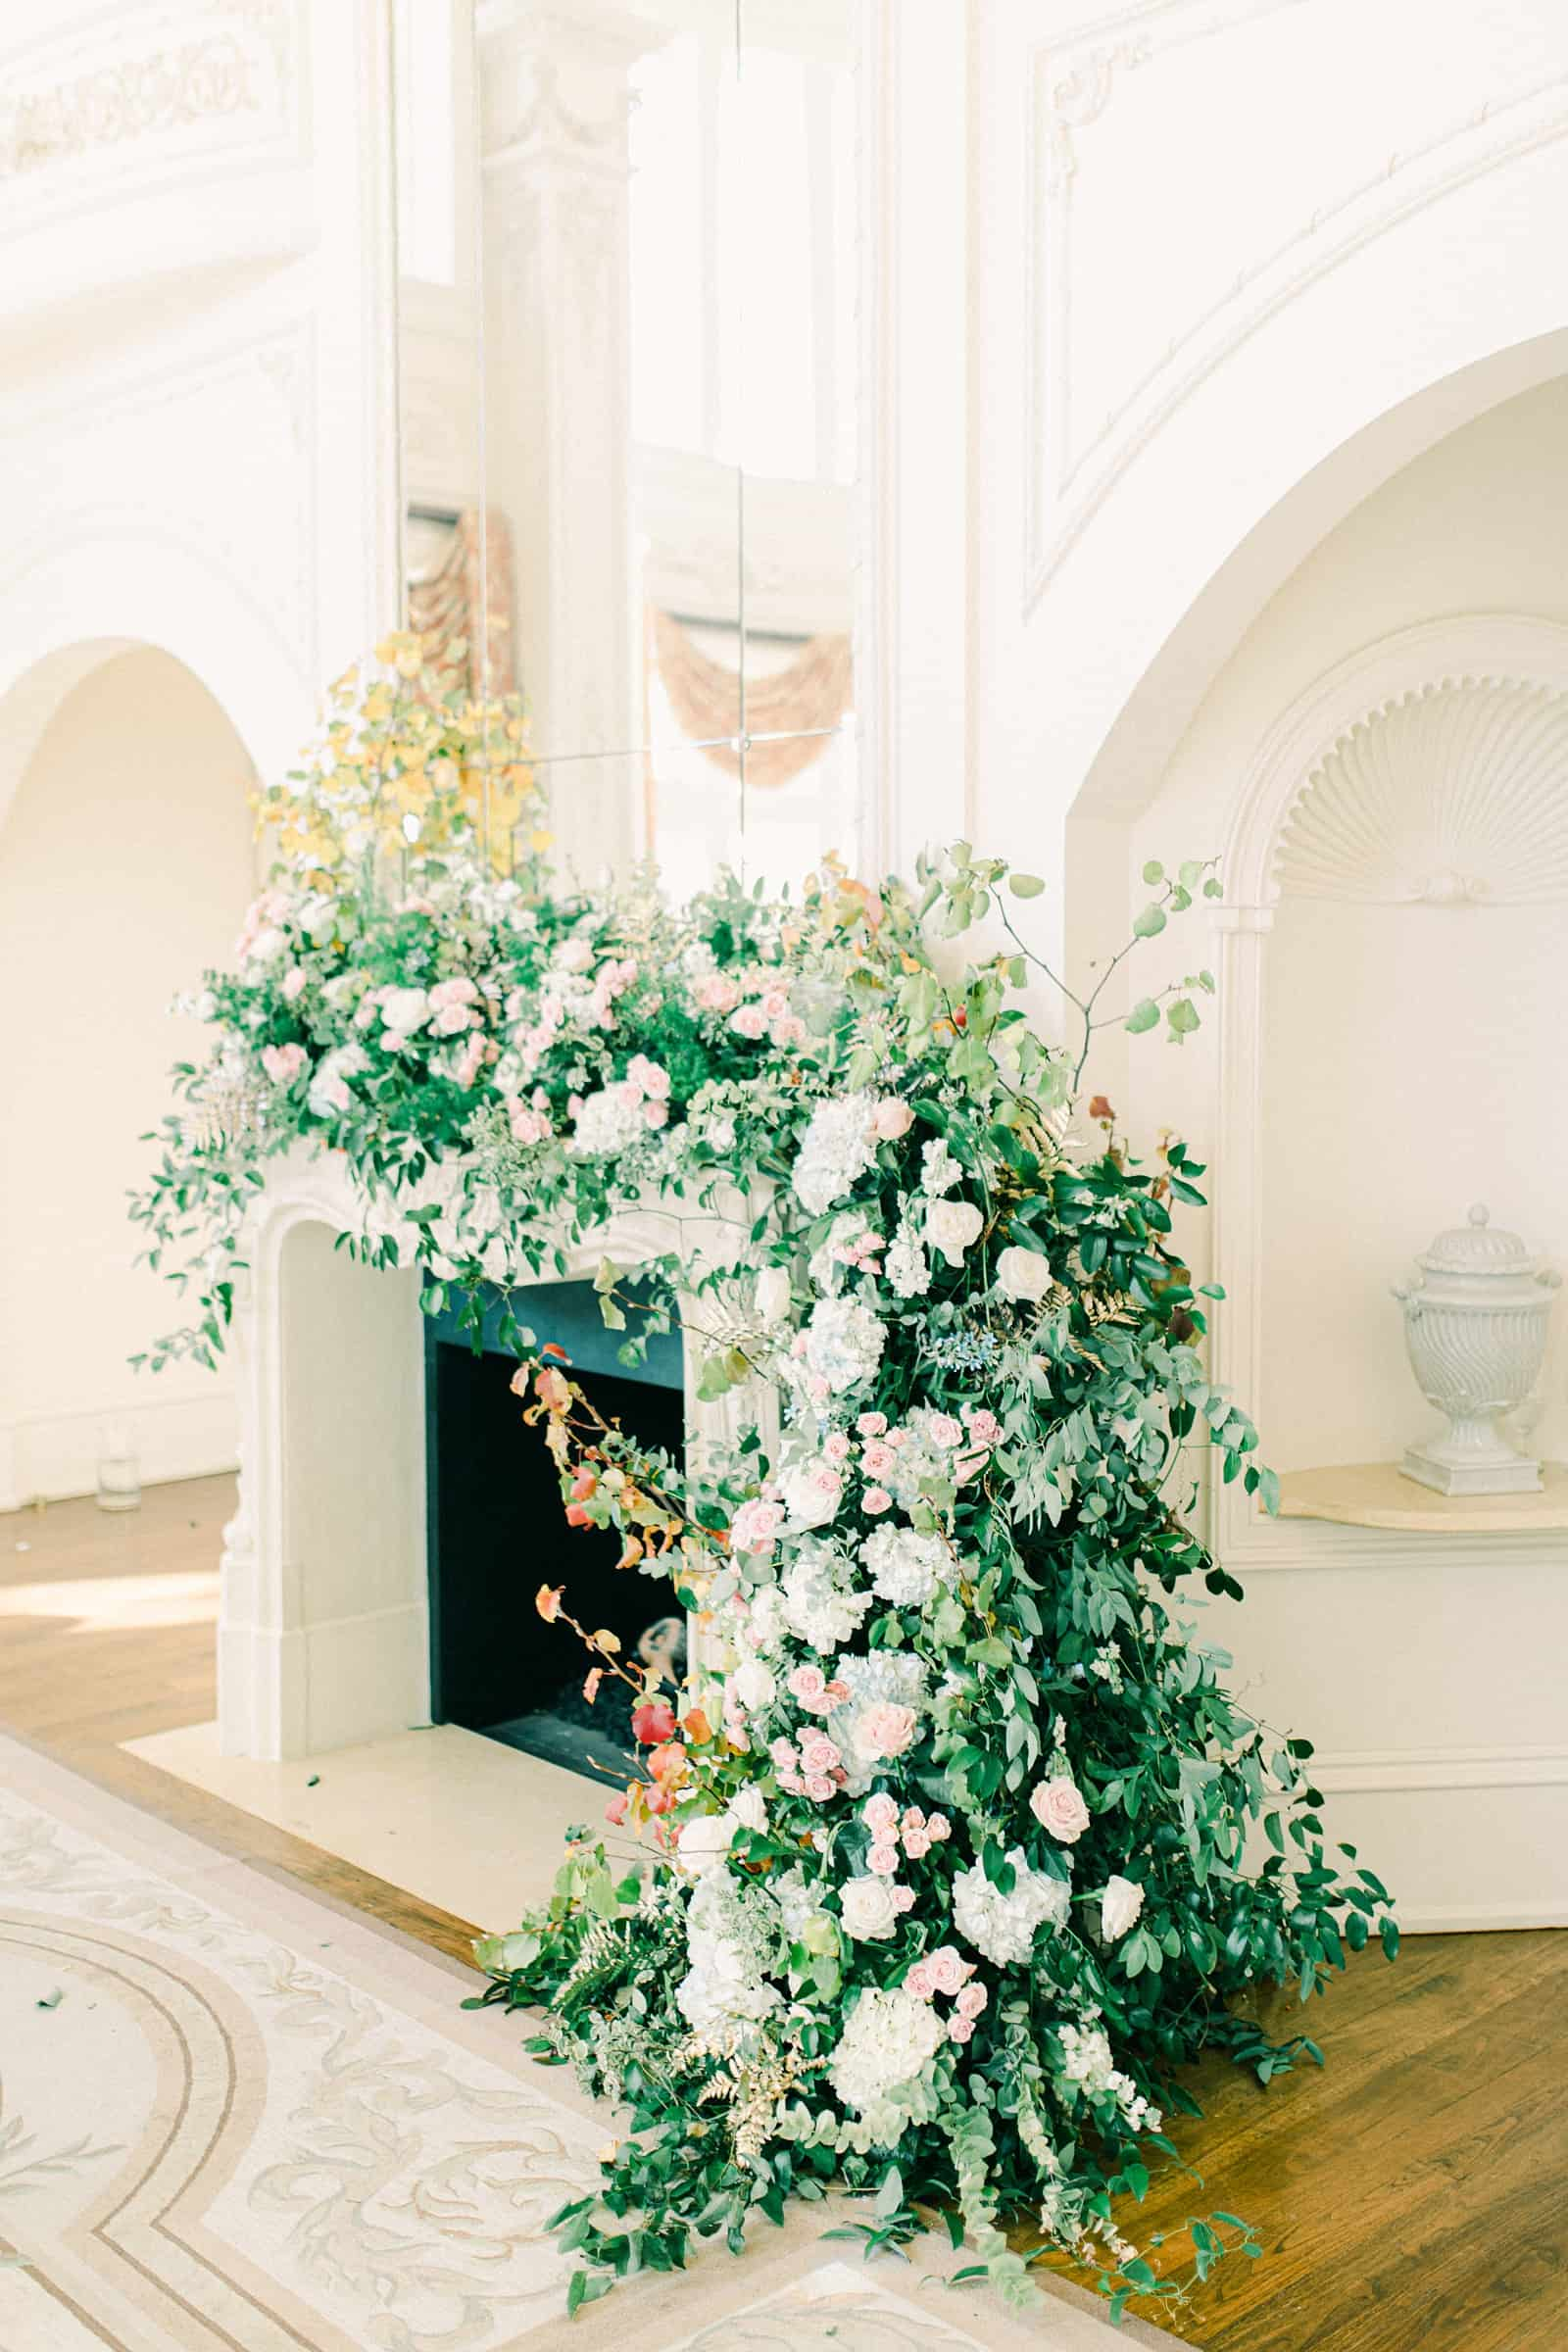 Ceremony backdrop garland with greenery and flowers in front of fireplace